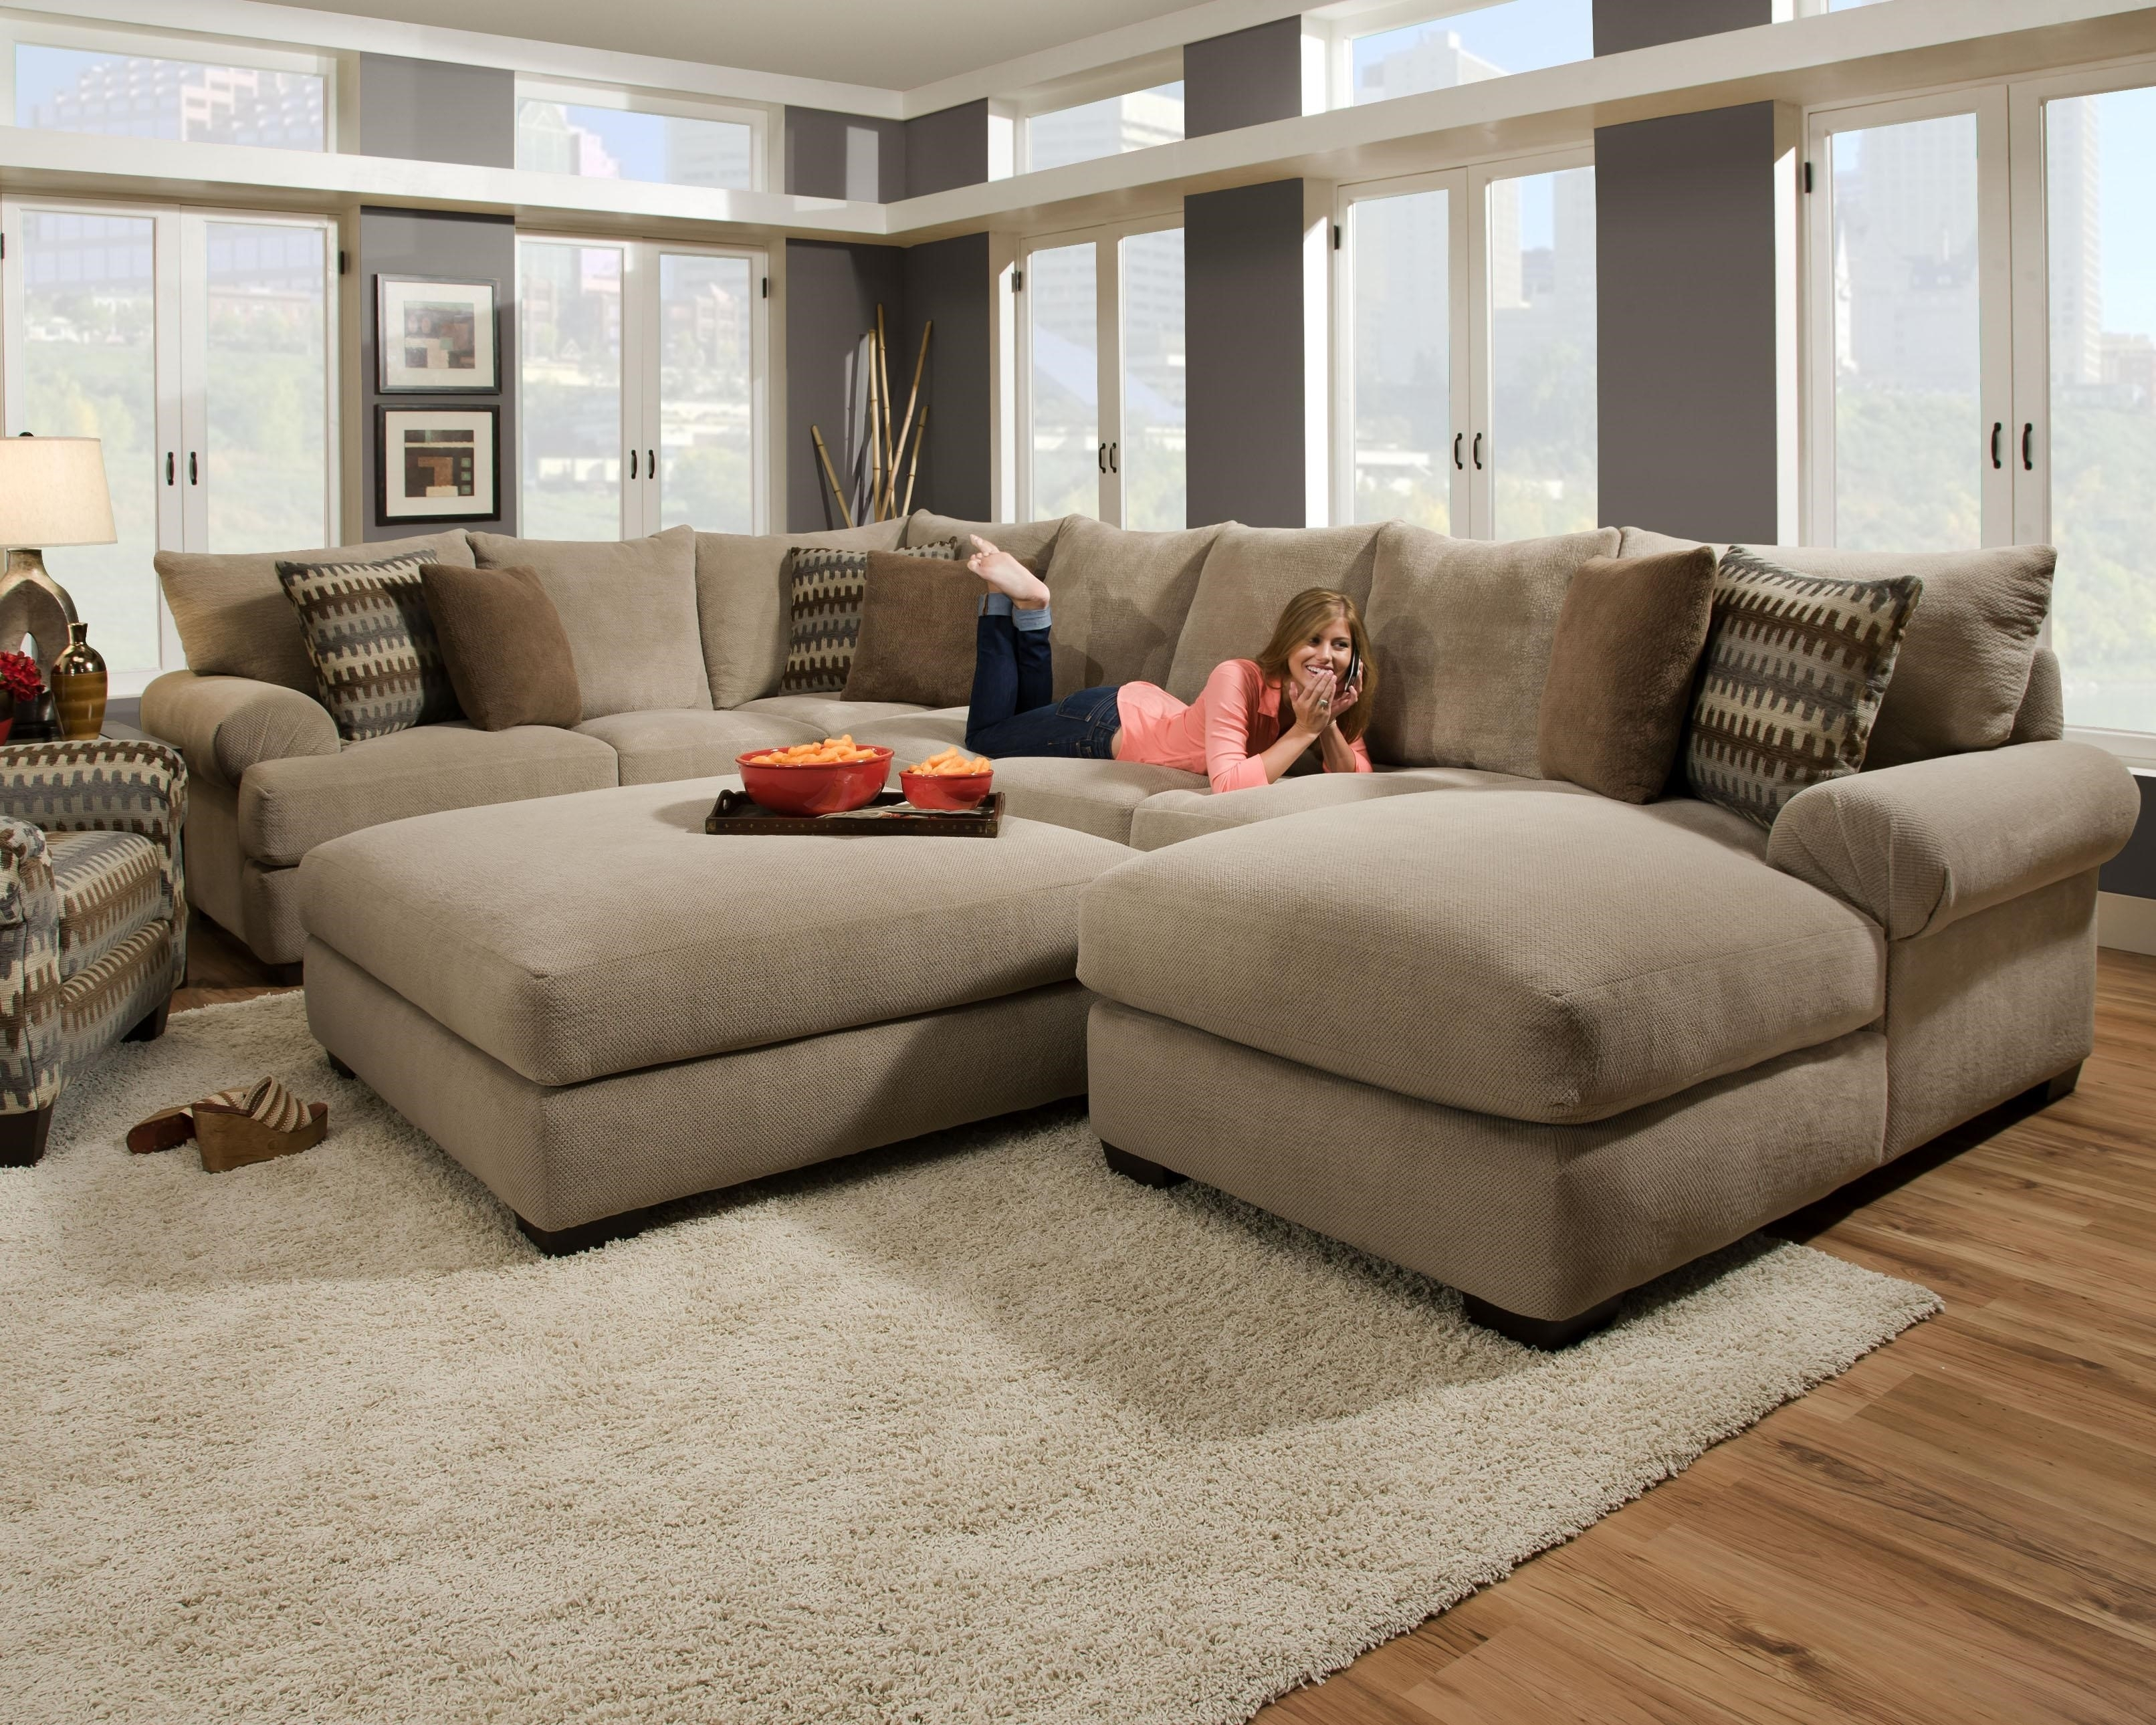 Cheap Sectional Sofas Charlotte Nc | Functionalities with Sectional Sofas In Charlotte Nc